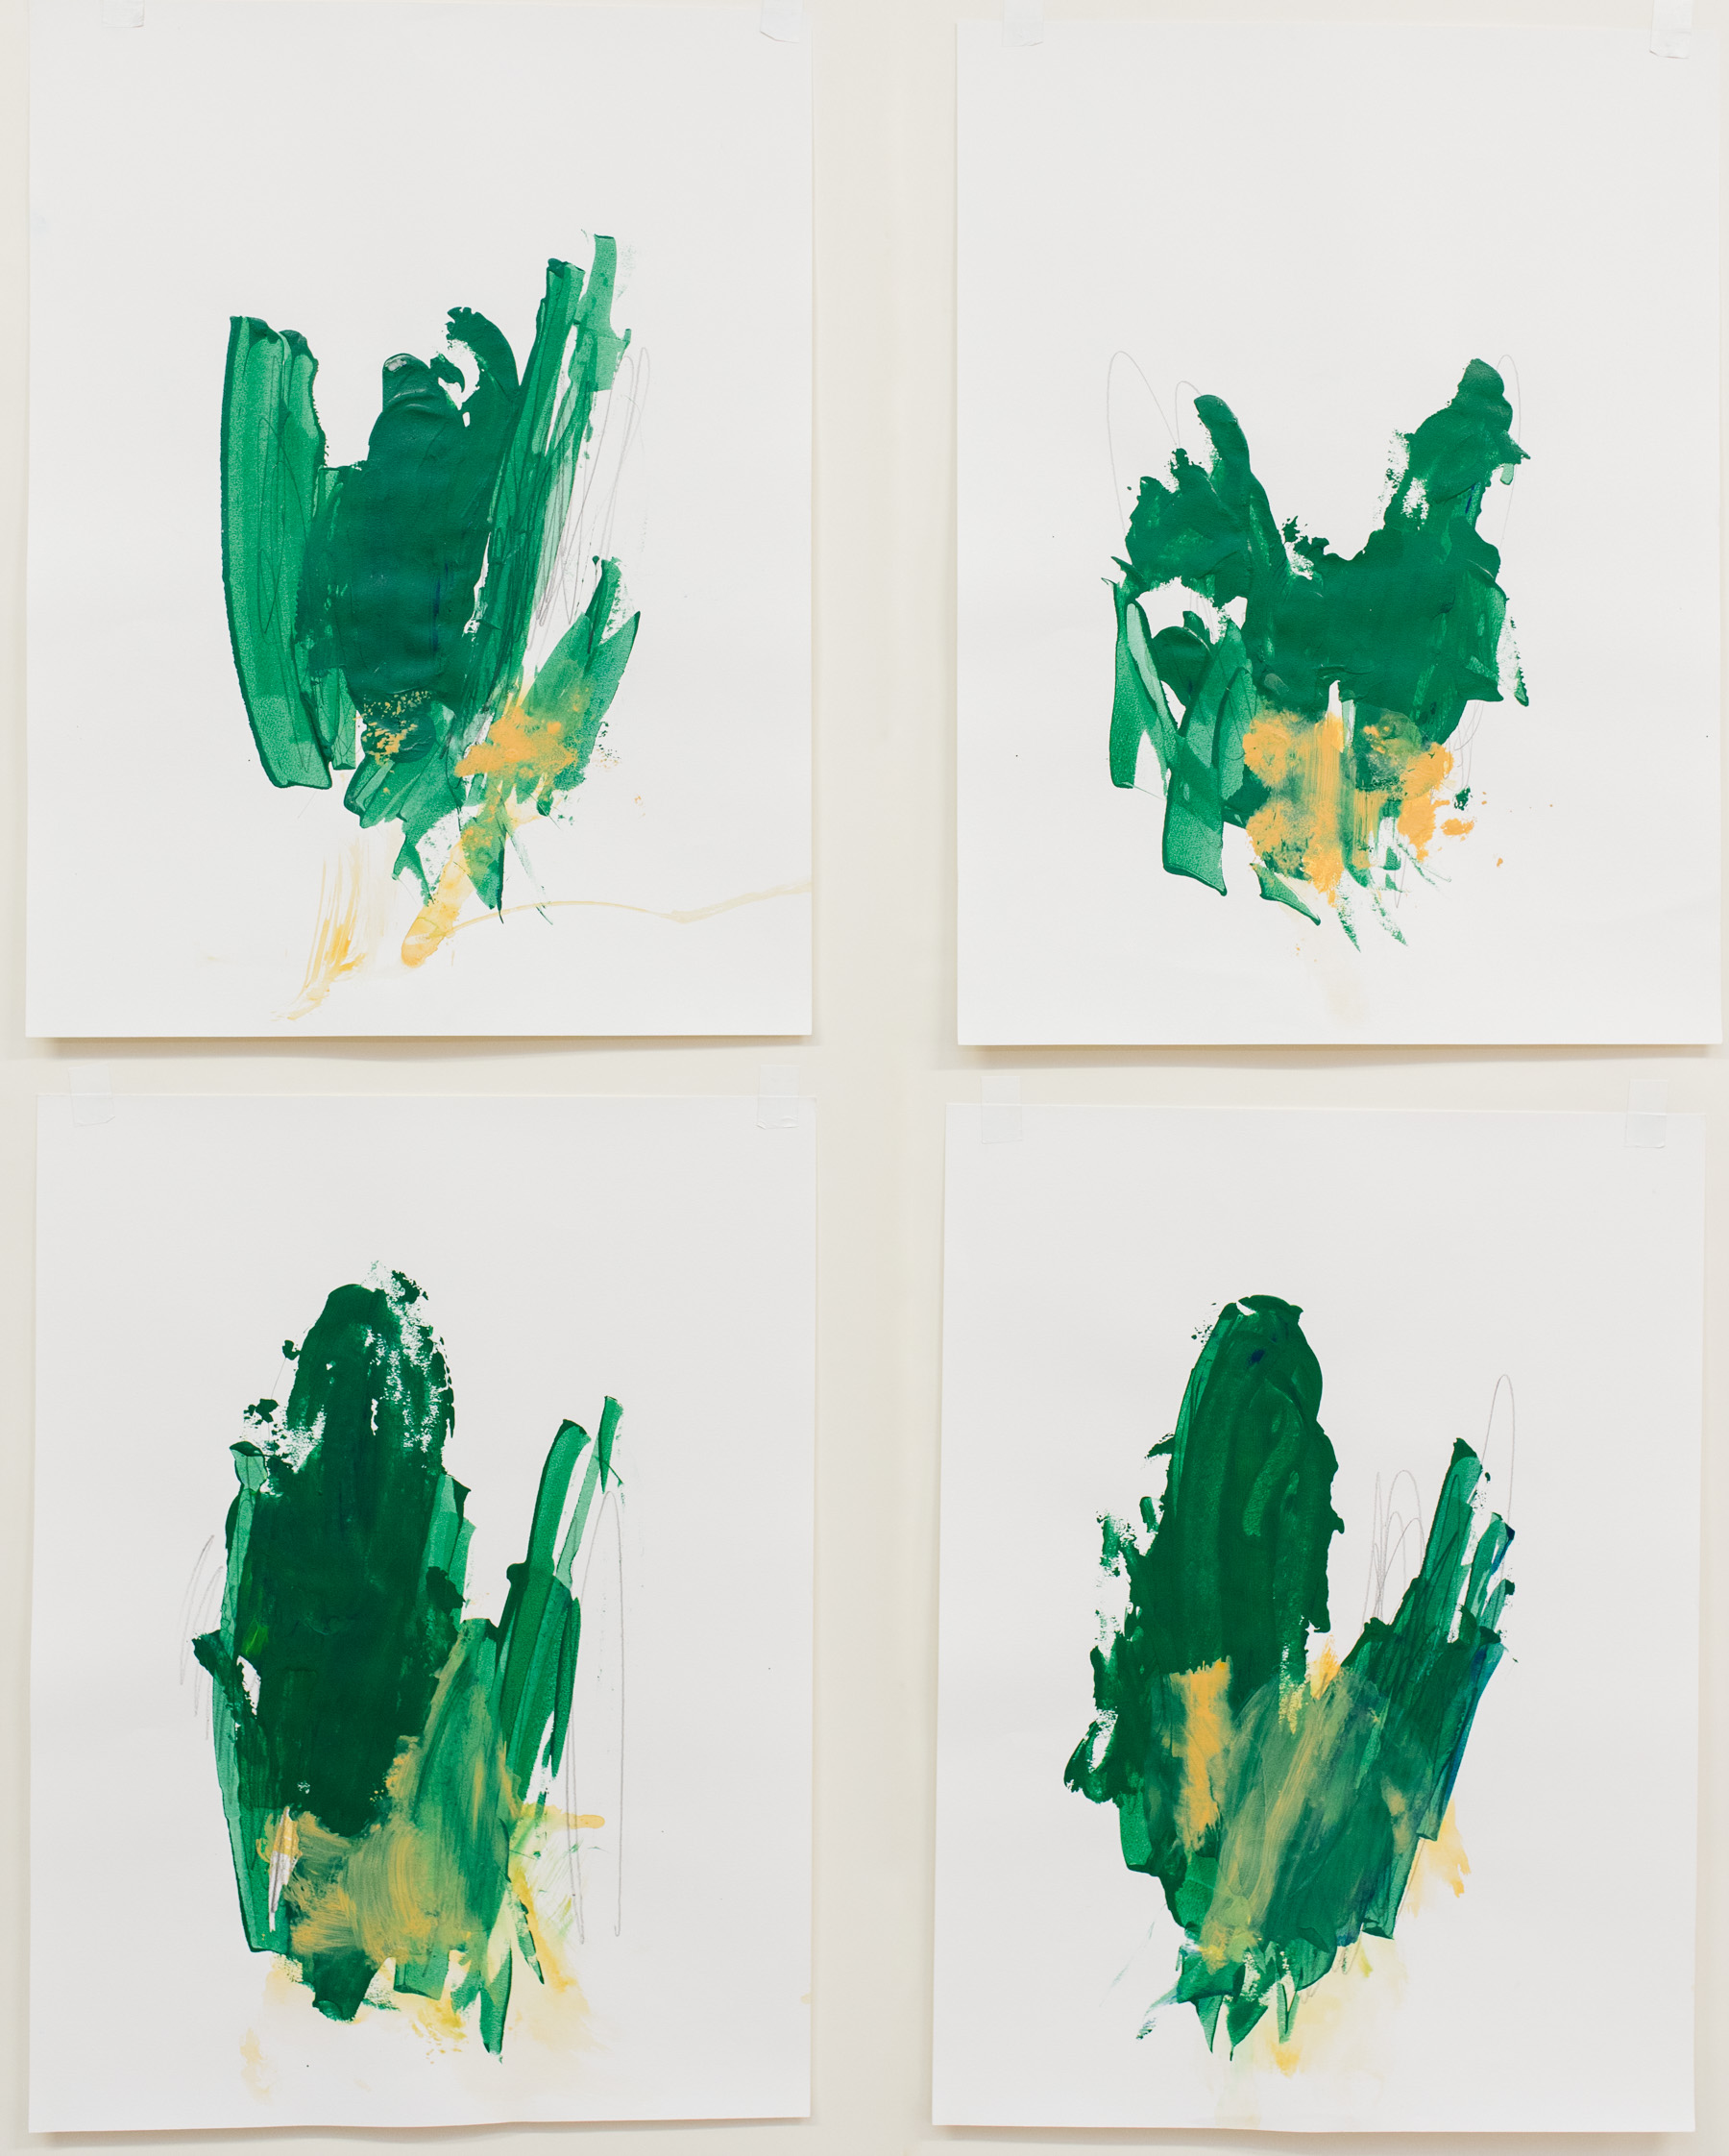 """Swings and Sways #1-4 , 18""""x24"""" each, acrylic on paper, 2018, available"""